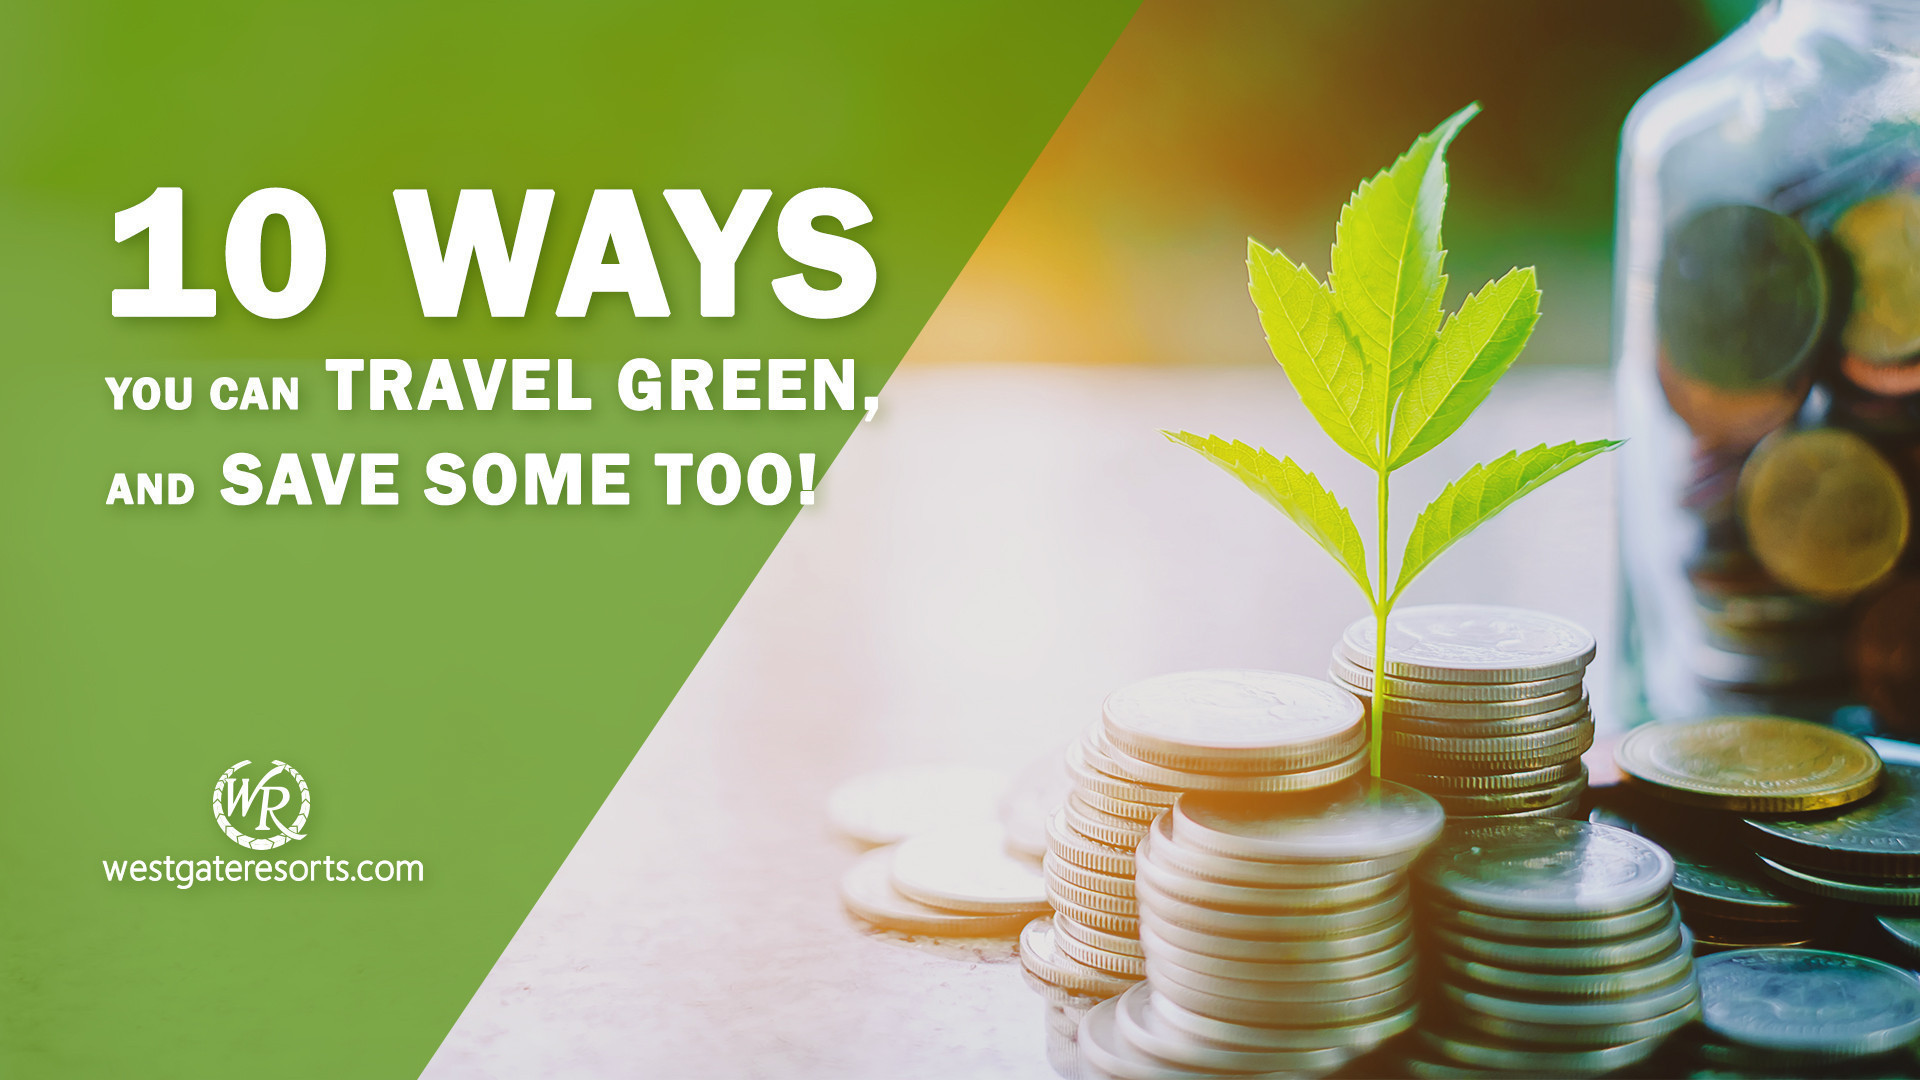 10 Ways You Can Travel Green, And Save Some Too! | Green Travel & Hotels at Westgate